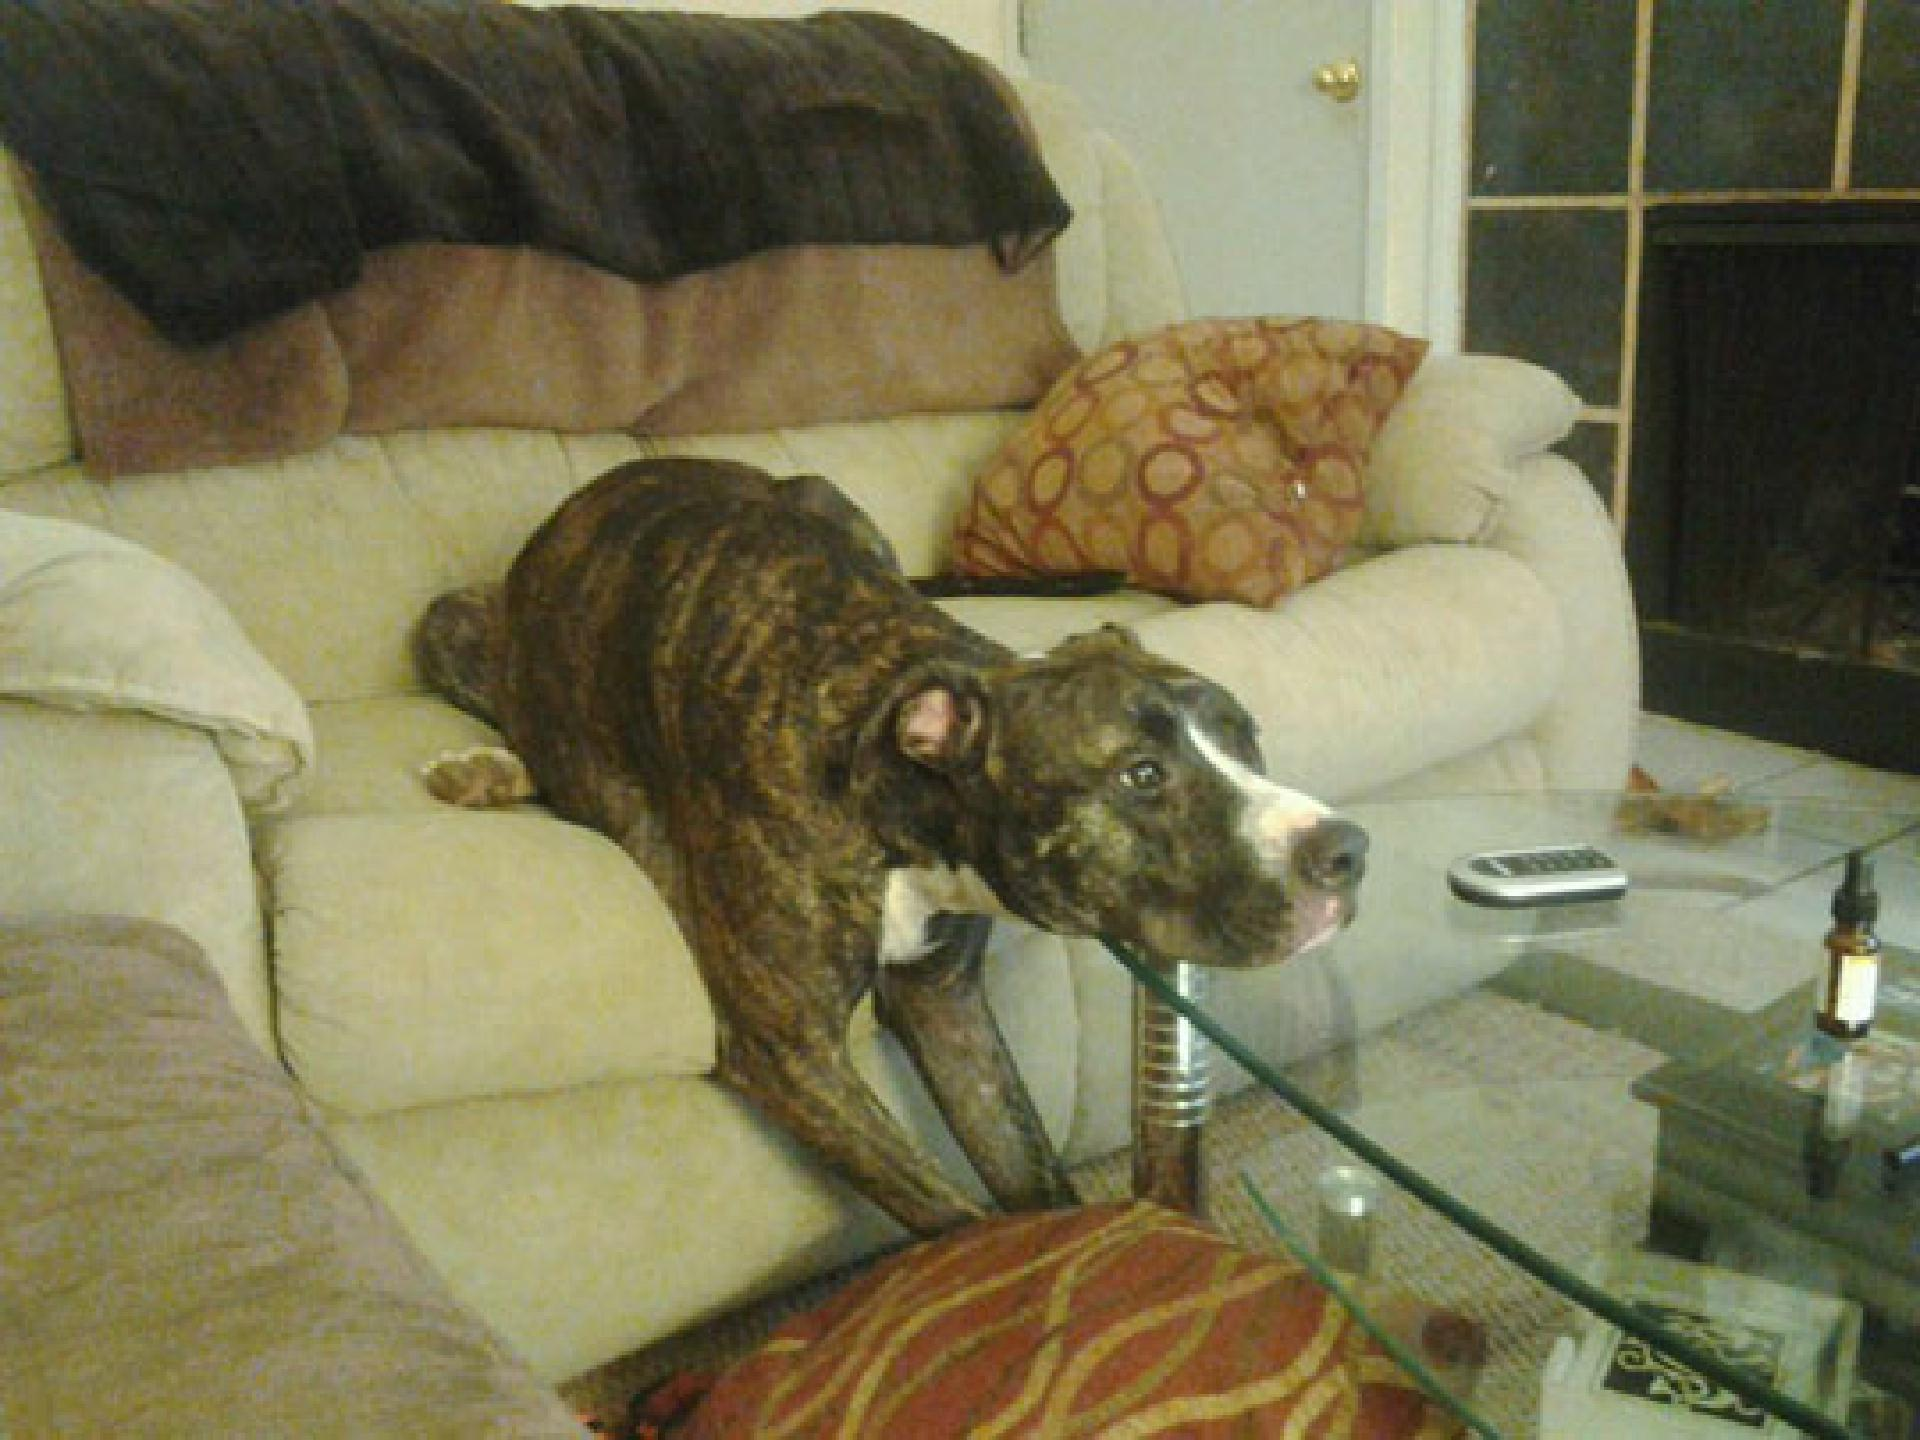 funny-dog-watching-TV-couch